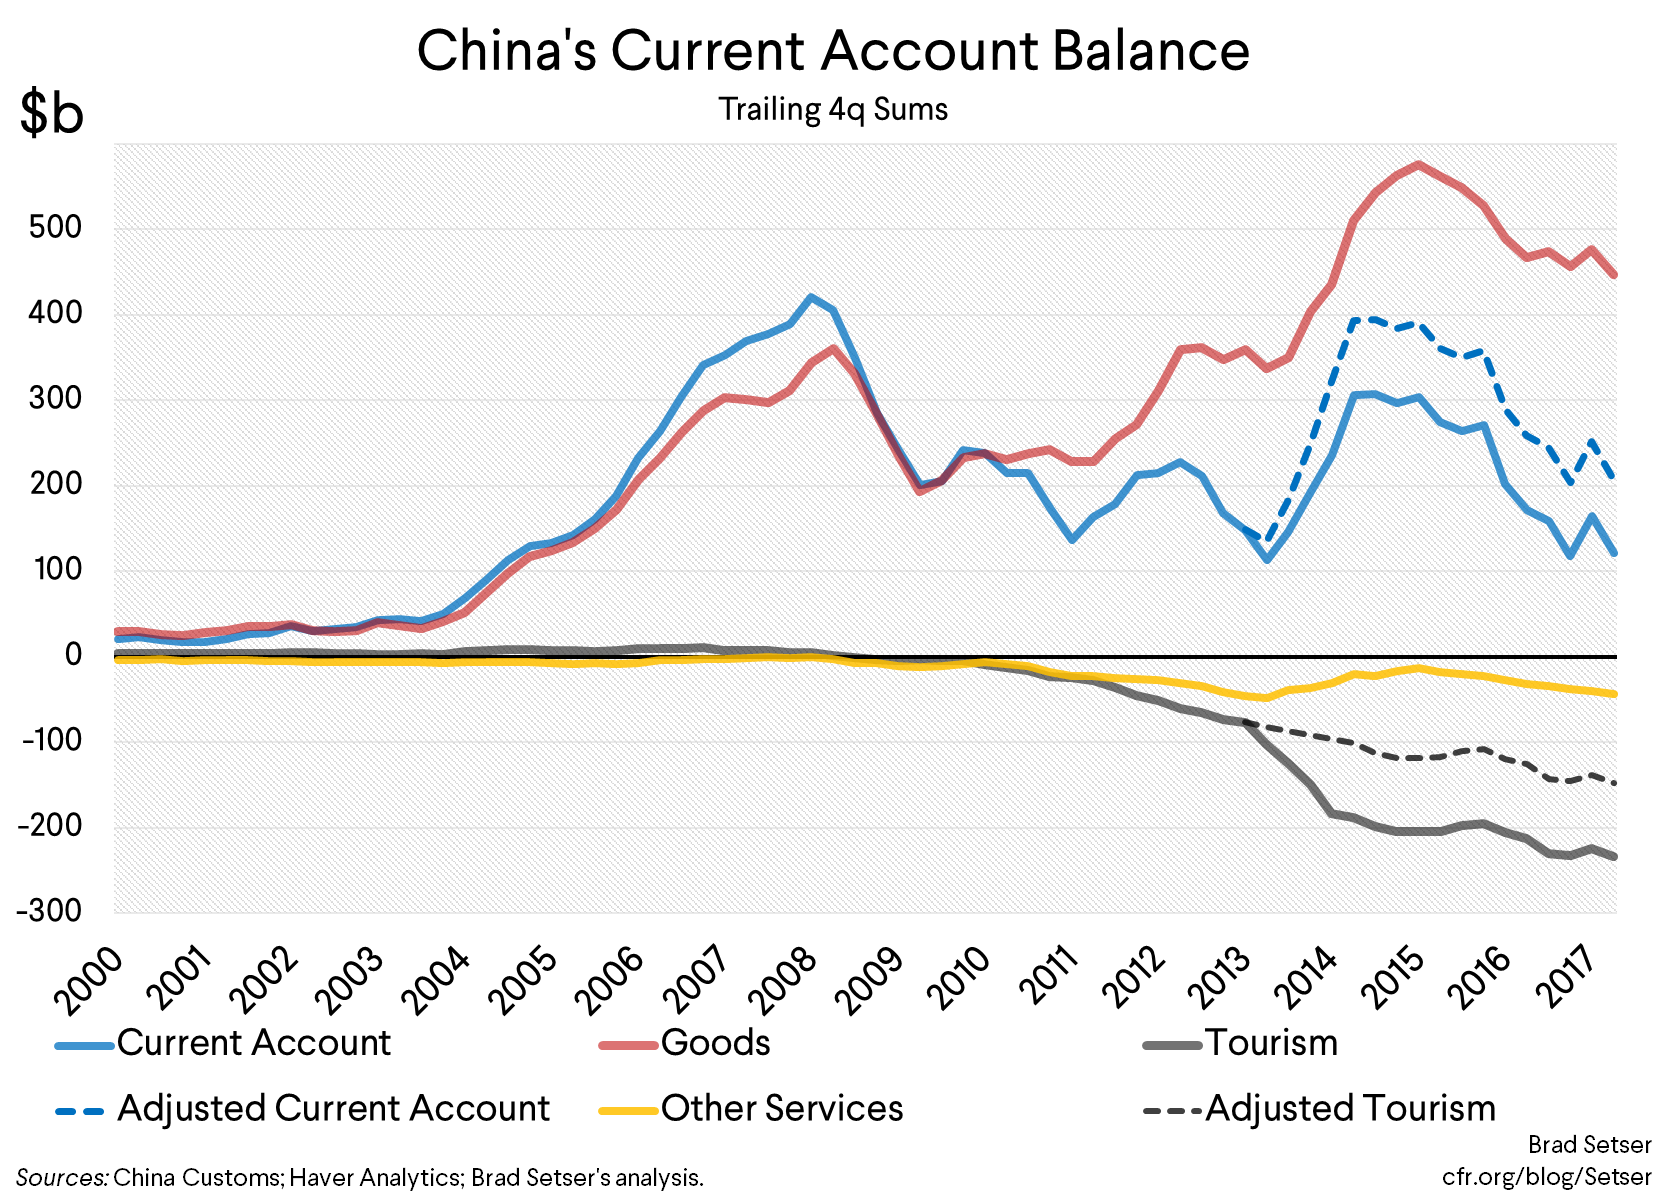 Disaggregating the Fall in China's Current Account Surplus Since 2007